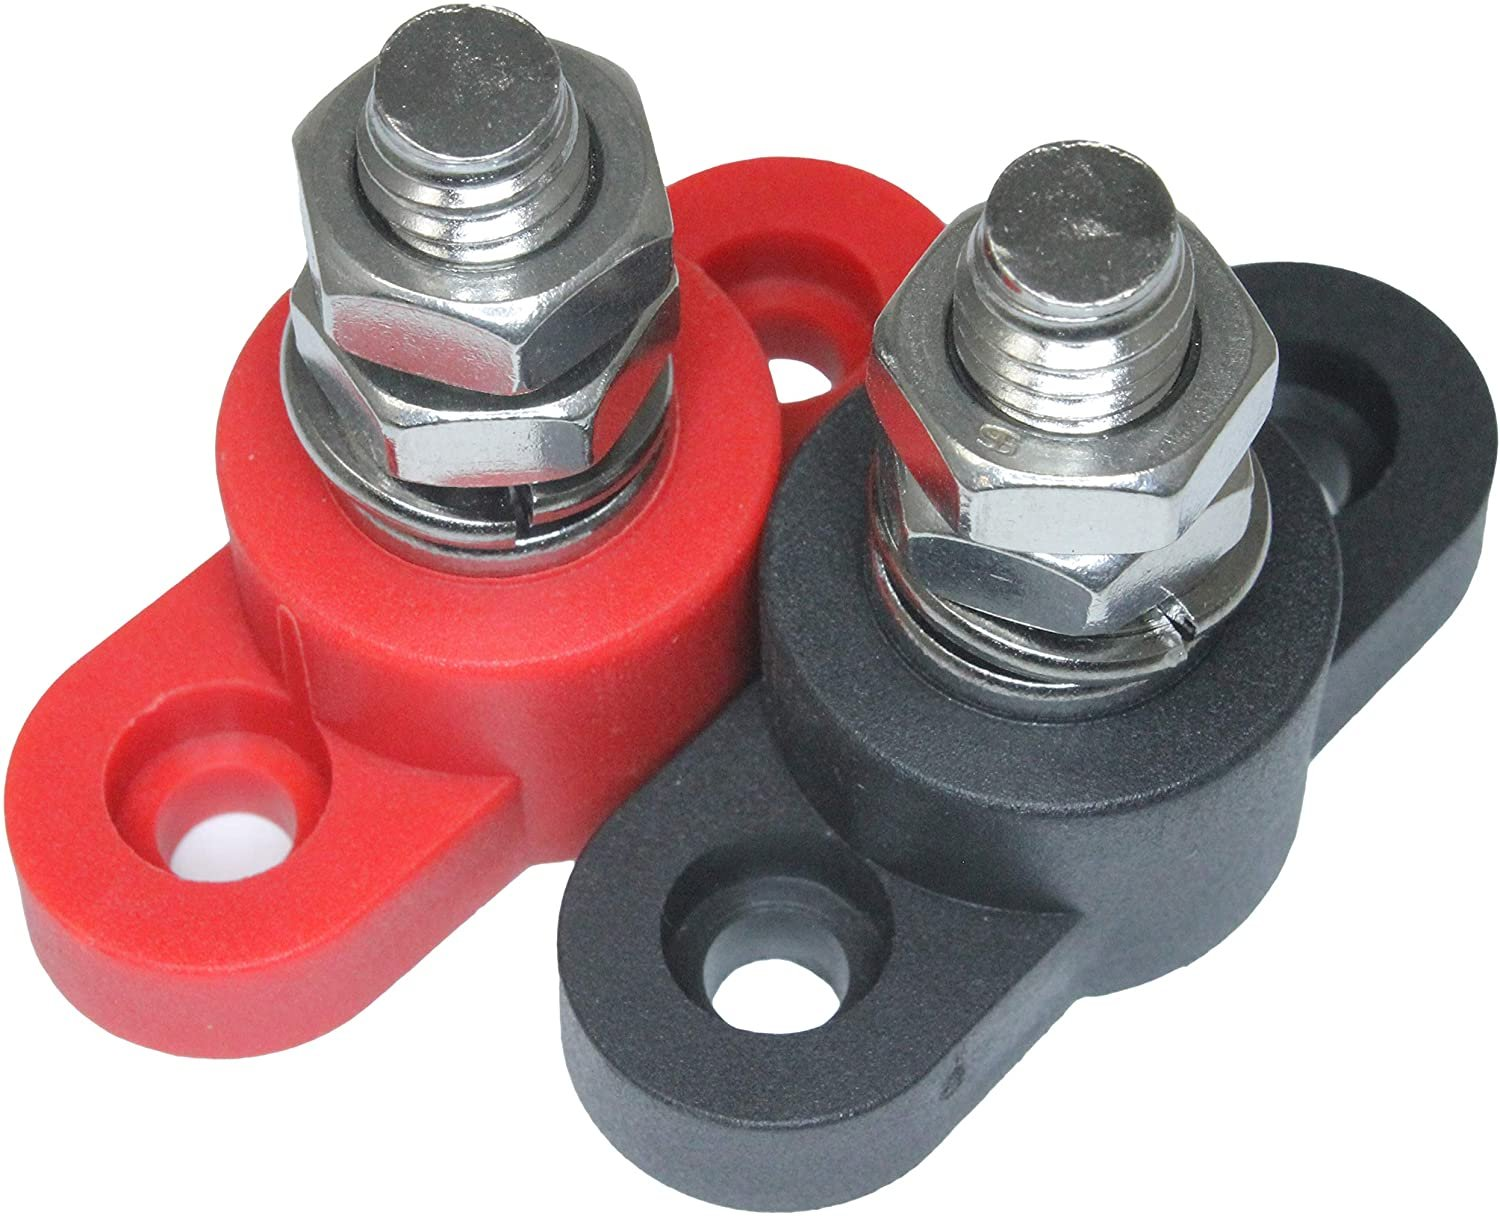 Positive Insulated Battery Power Junction Post Block 3/8 Lug X 16 thread (Red & Black Set)